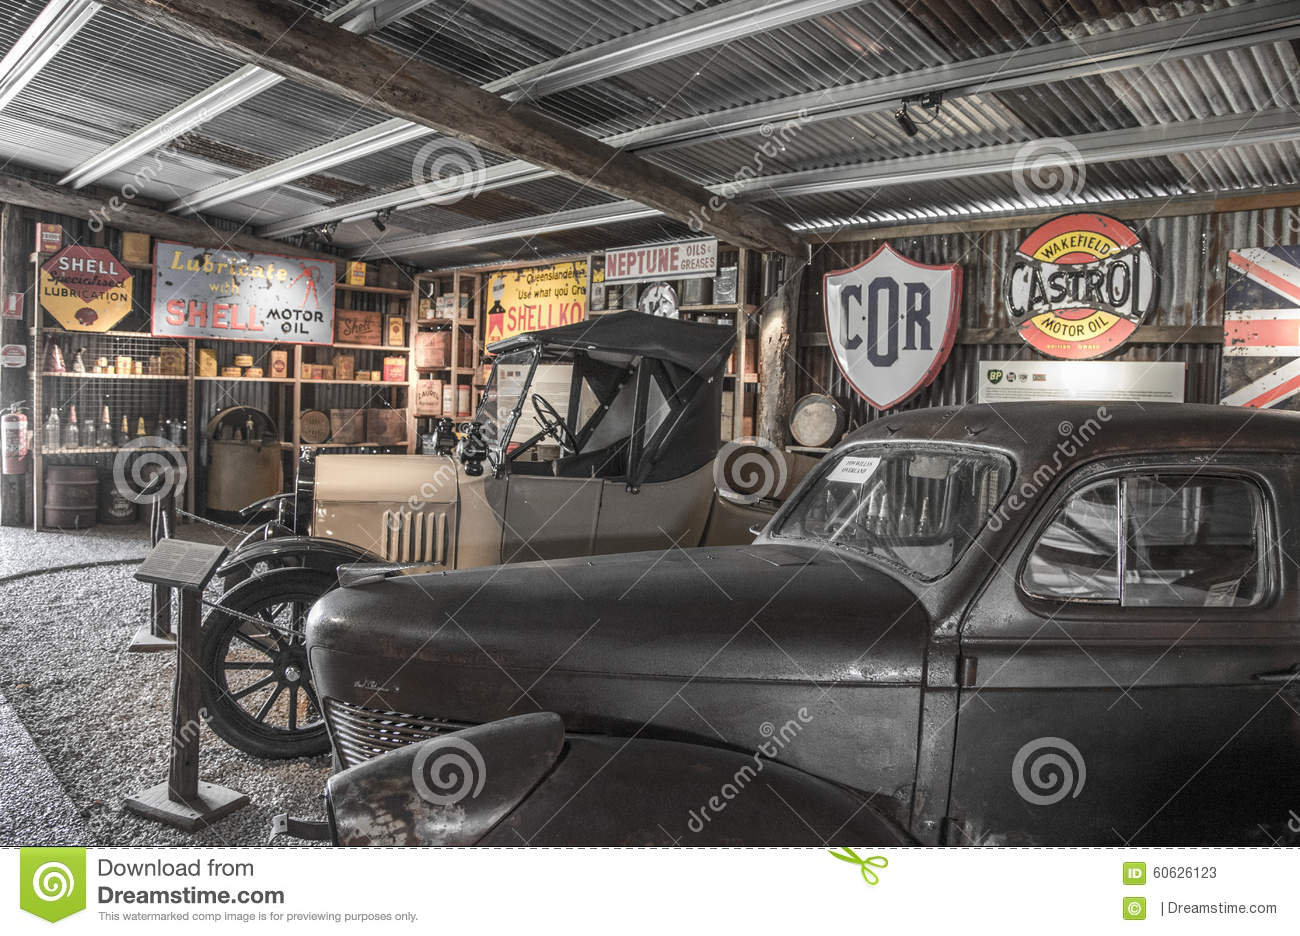 Old minetown car shop editorial stock photo. Image of aband - 60626123